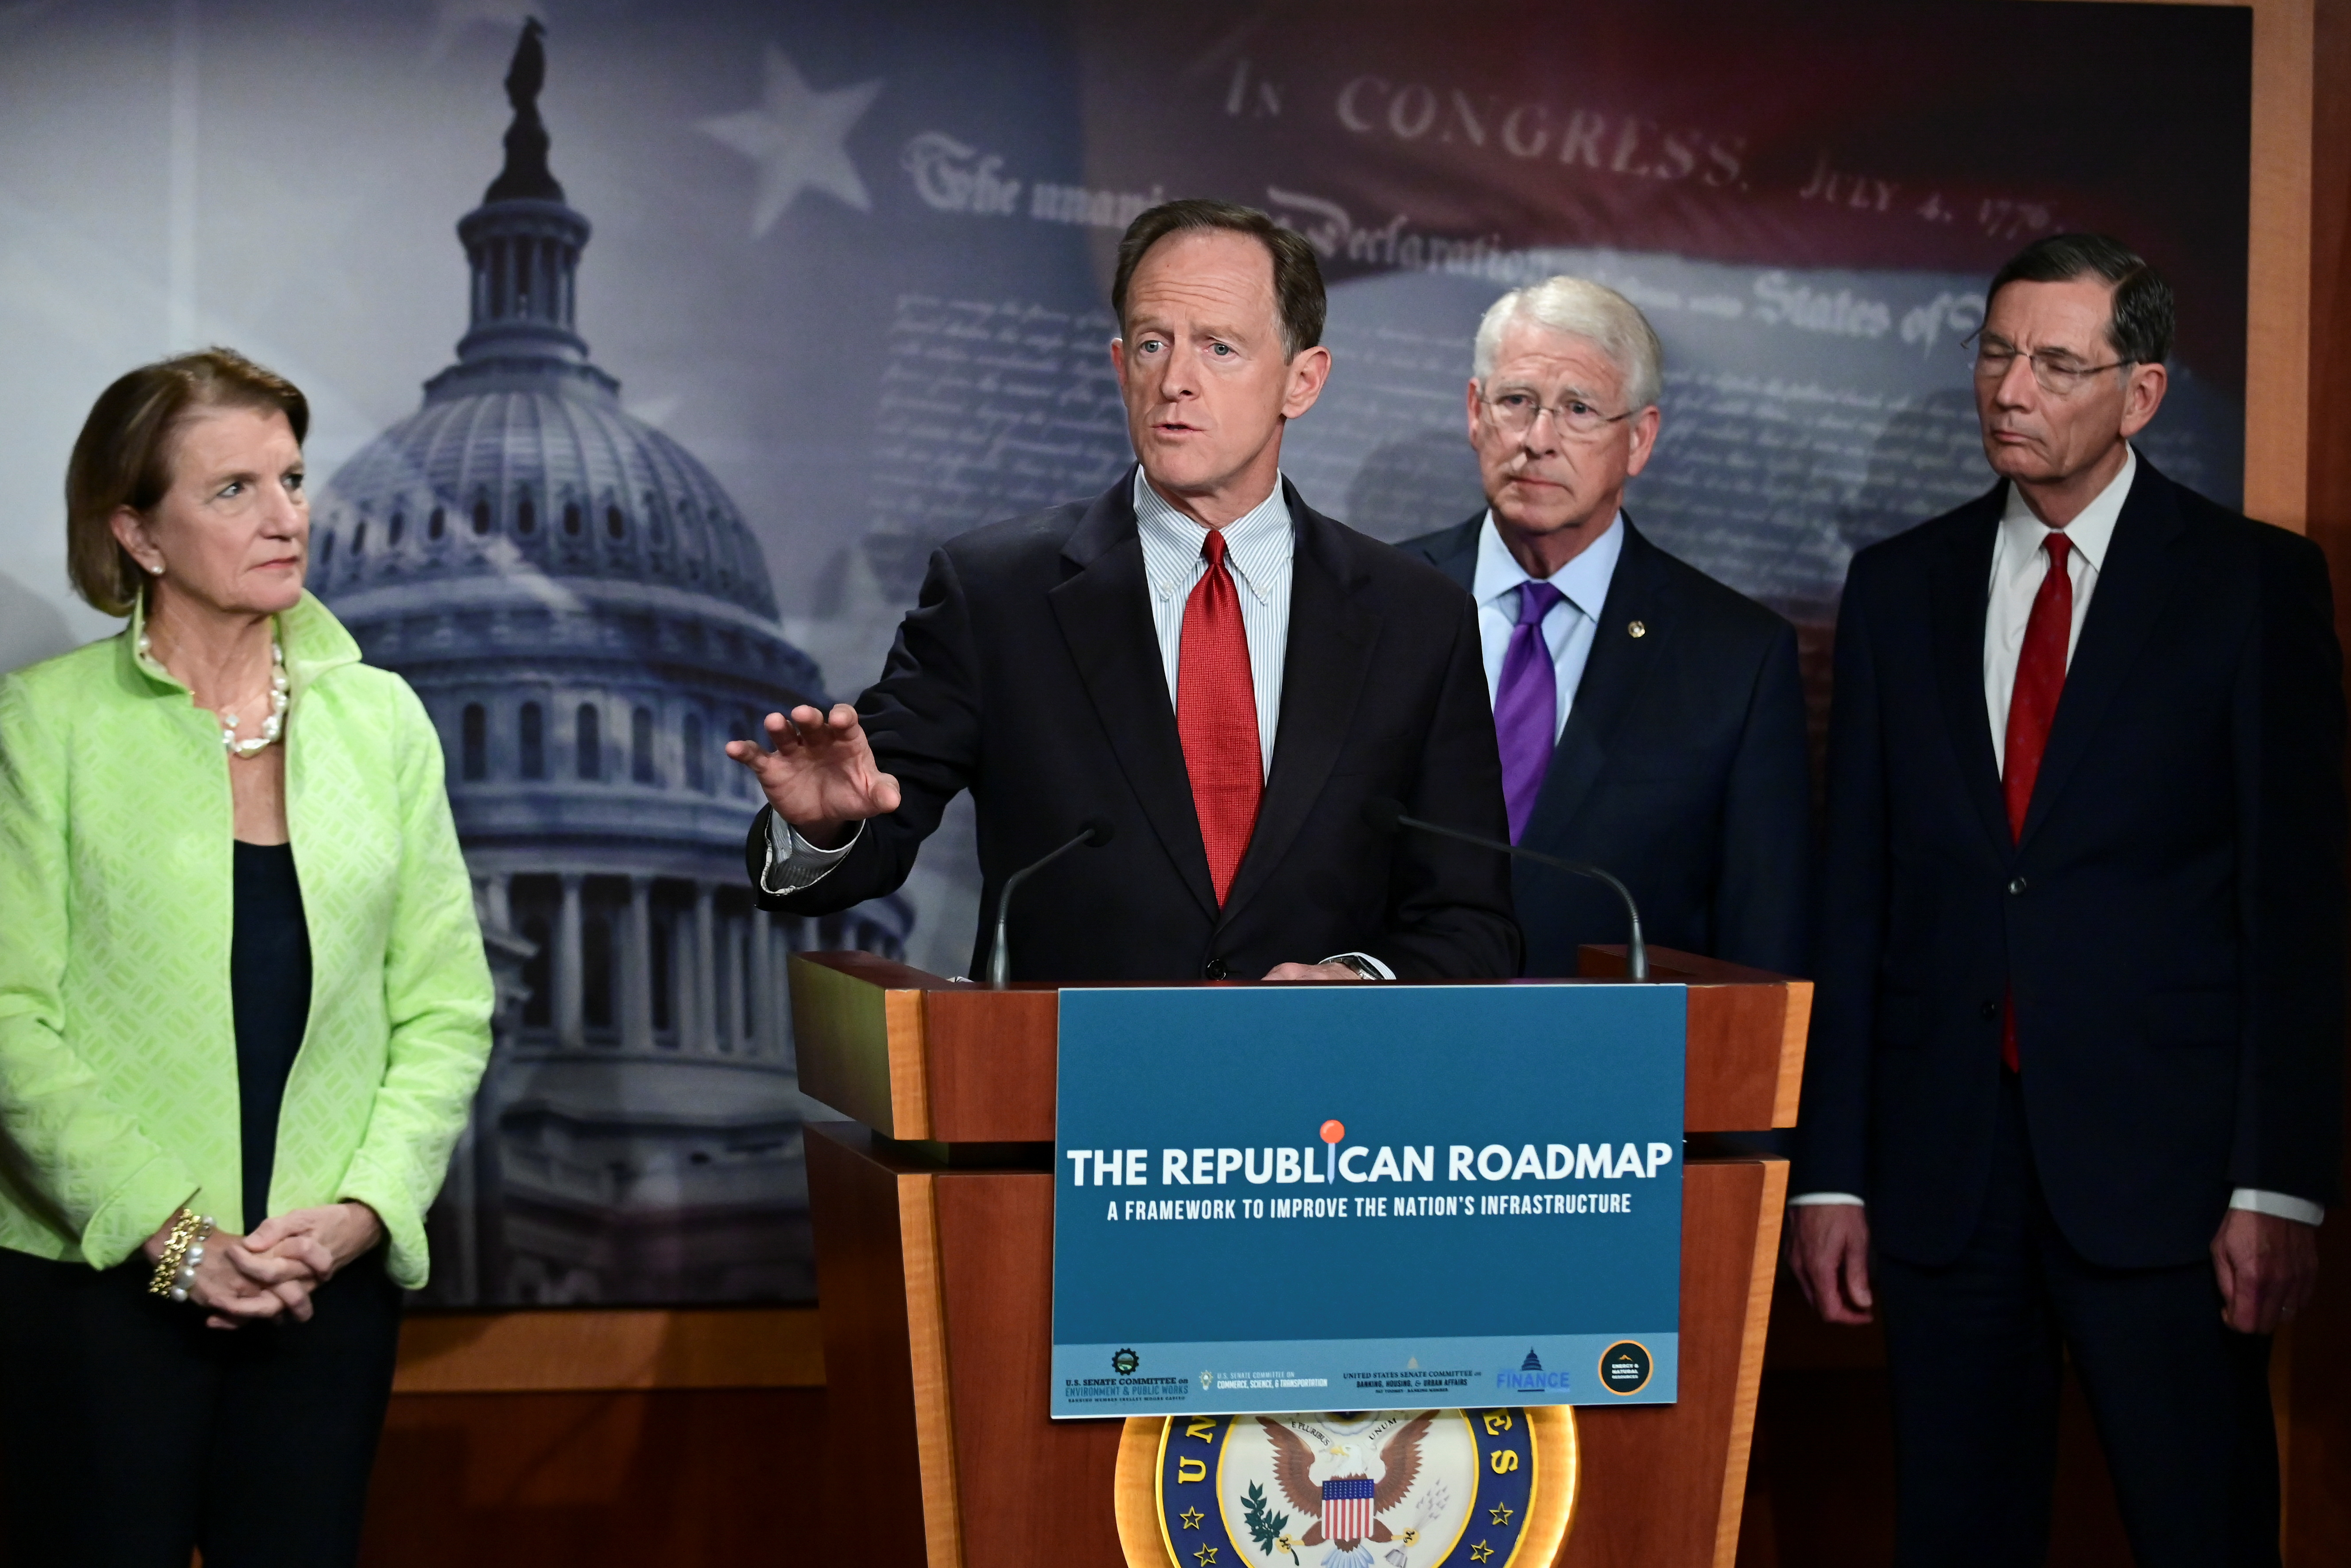 Pat Toomey (R-PA) speaks during a news conference to introduce the Republican infrastructure plan, at the U.S. Capitol in Washington, U.S., April 22, 2021. REUTERS/Erin Scott